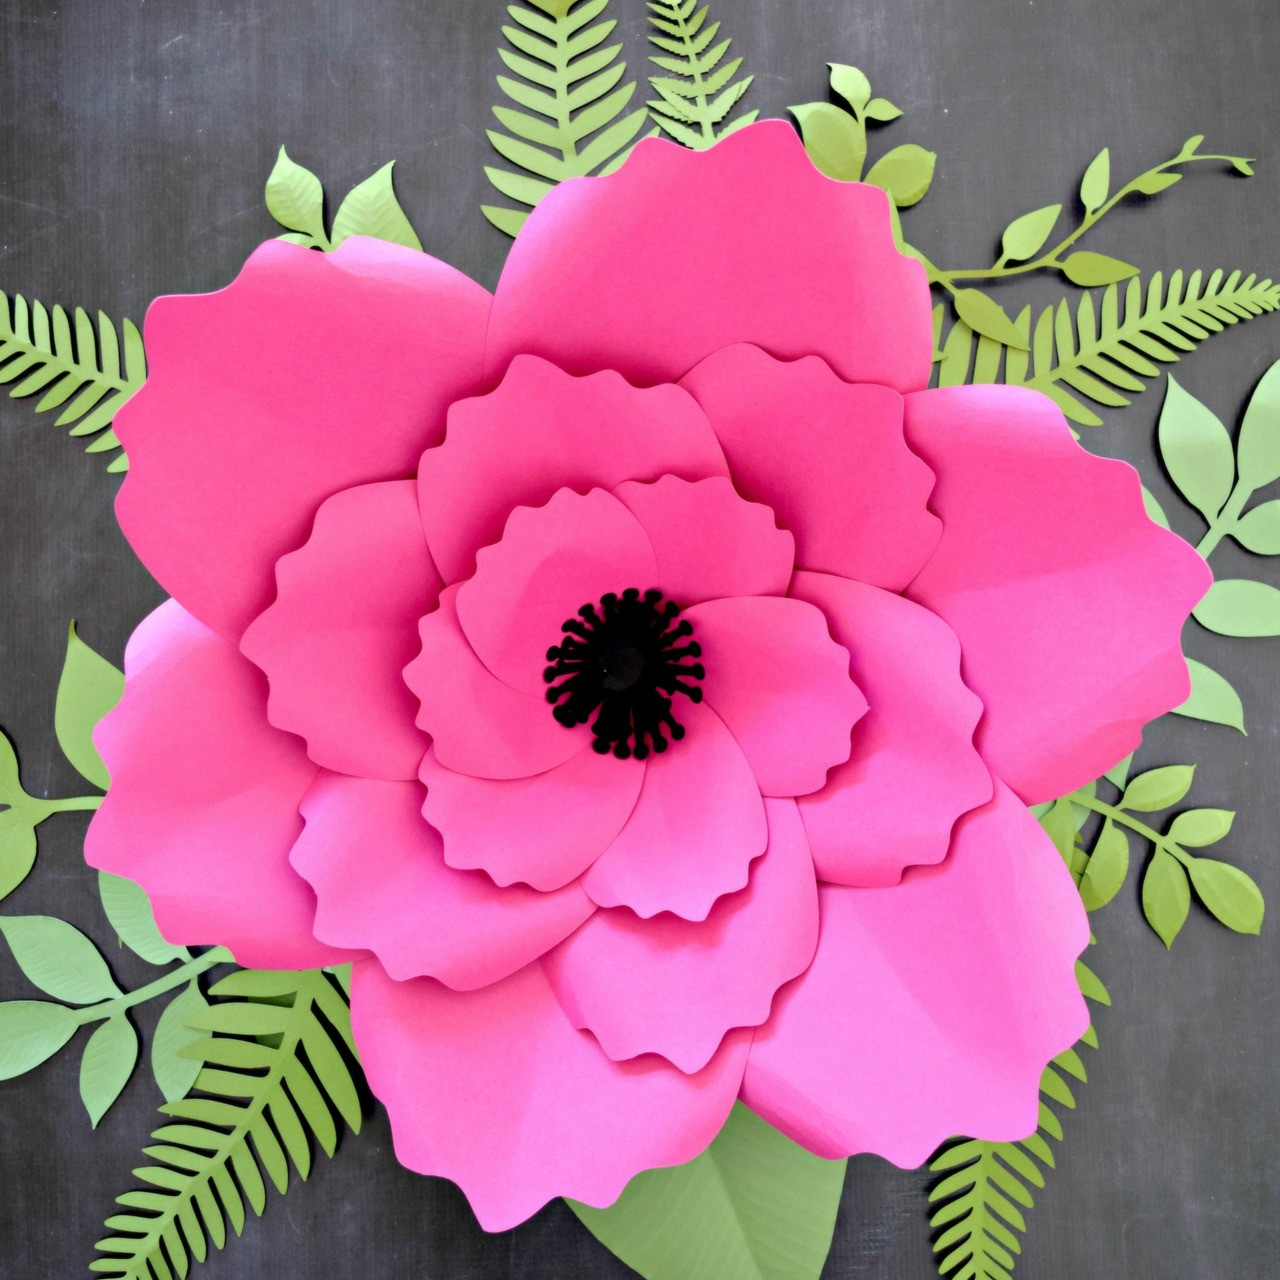 Giant anemone paper flower template with poppy center catching giant anemone paper flower template with poppy center catching colorlfies mightylinksfo